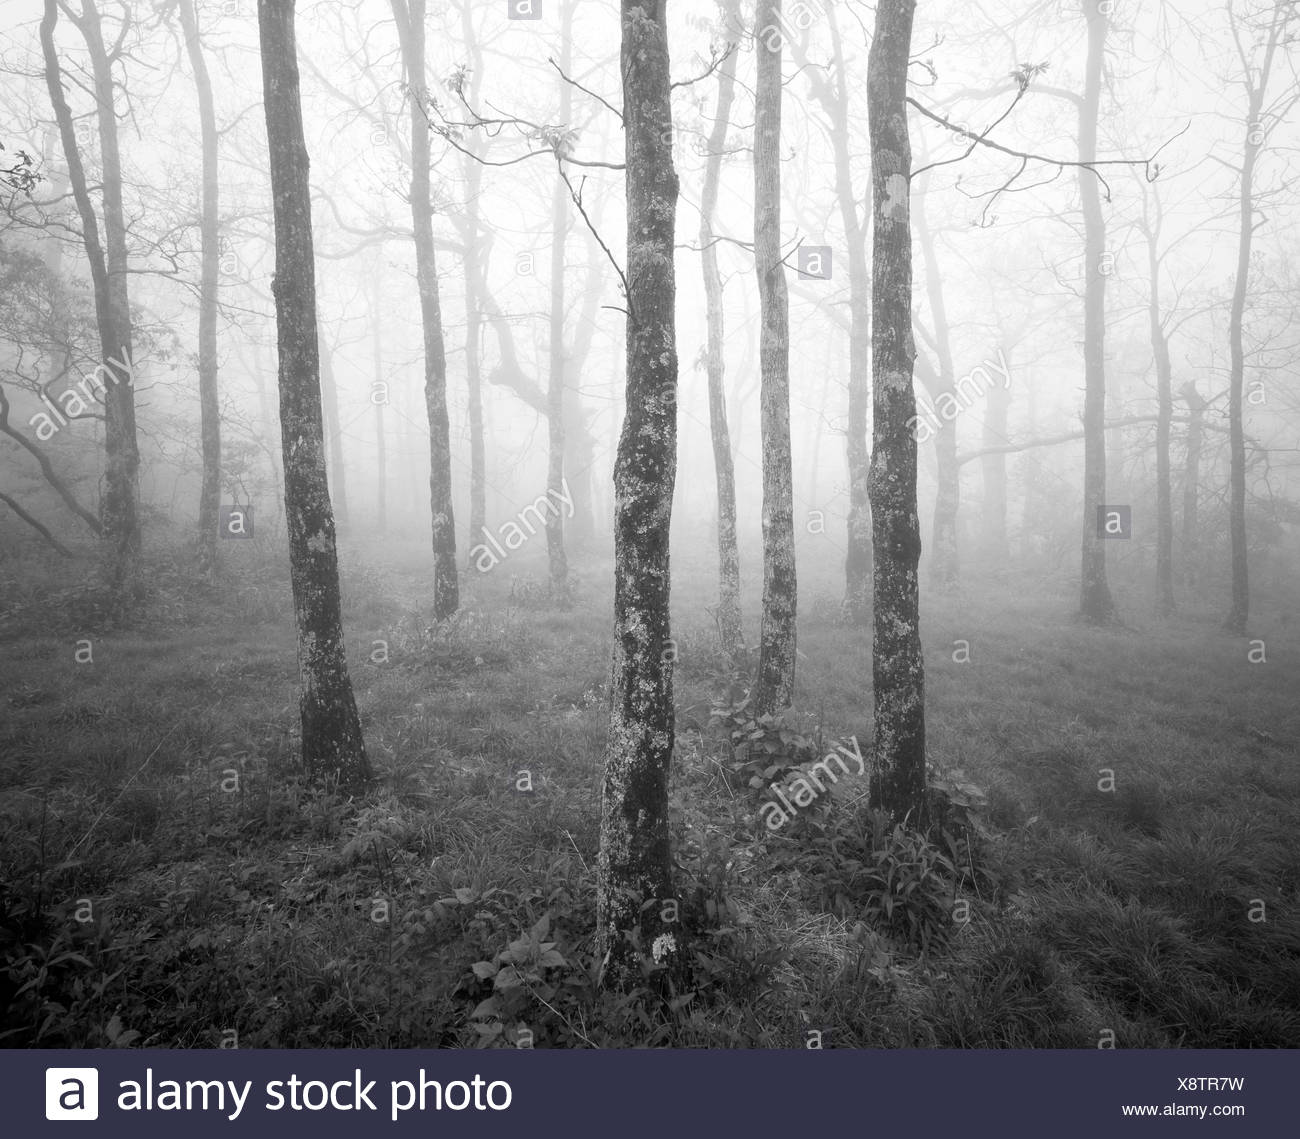 Black and white photograph of misty forest at the start of the Appalachian Trail on Springer Mountain, Georgia, USA. - Stock Image